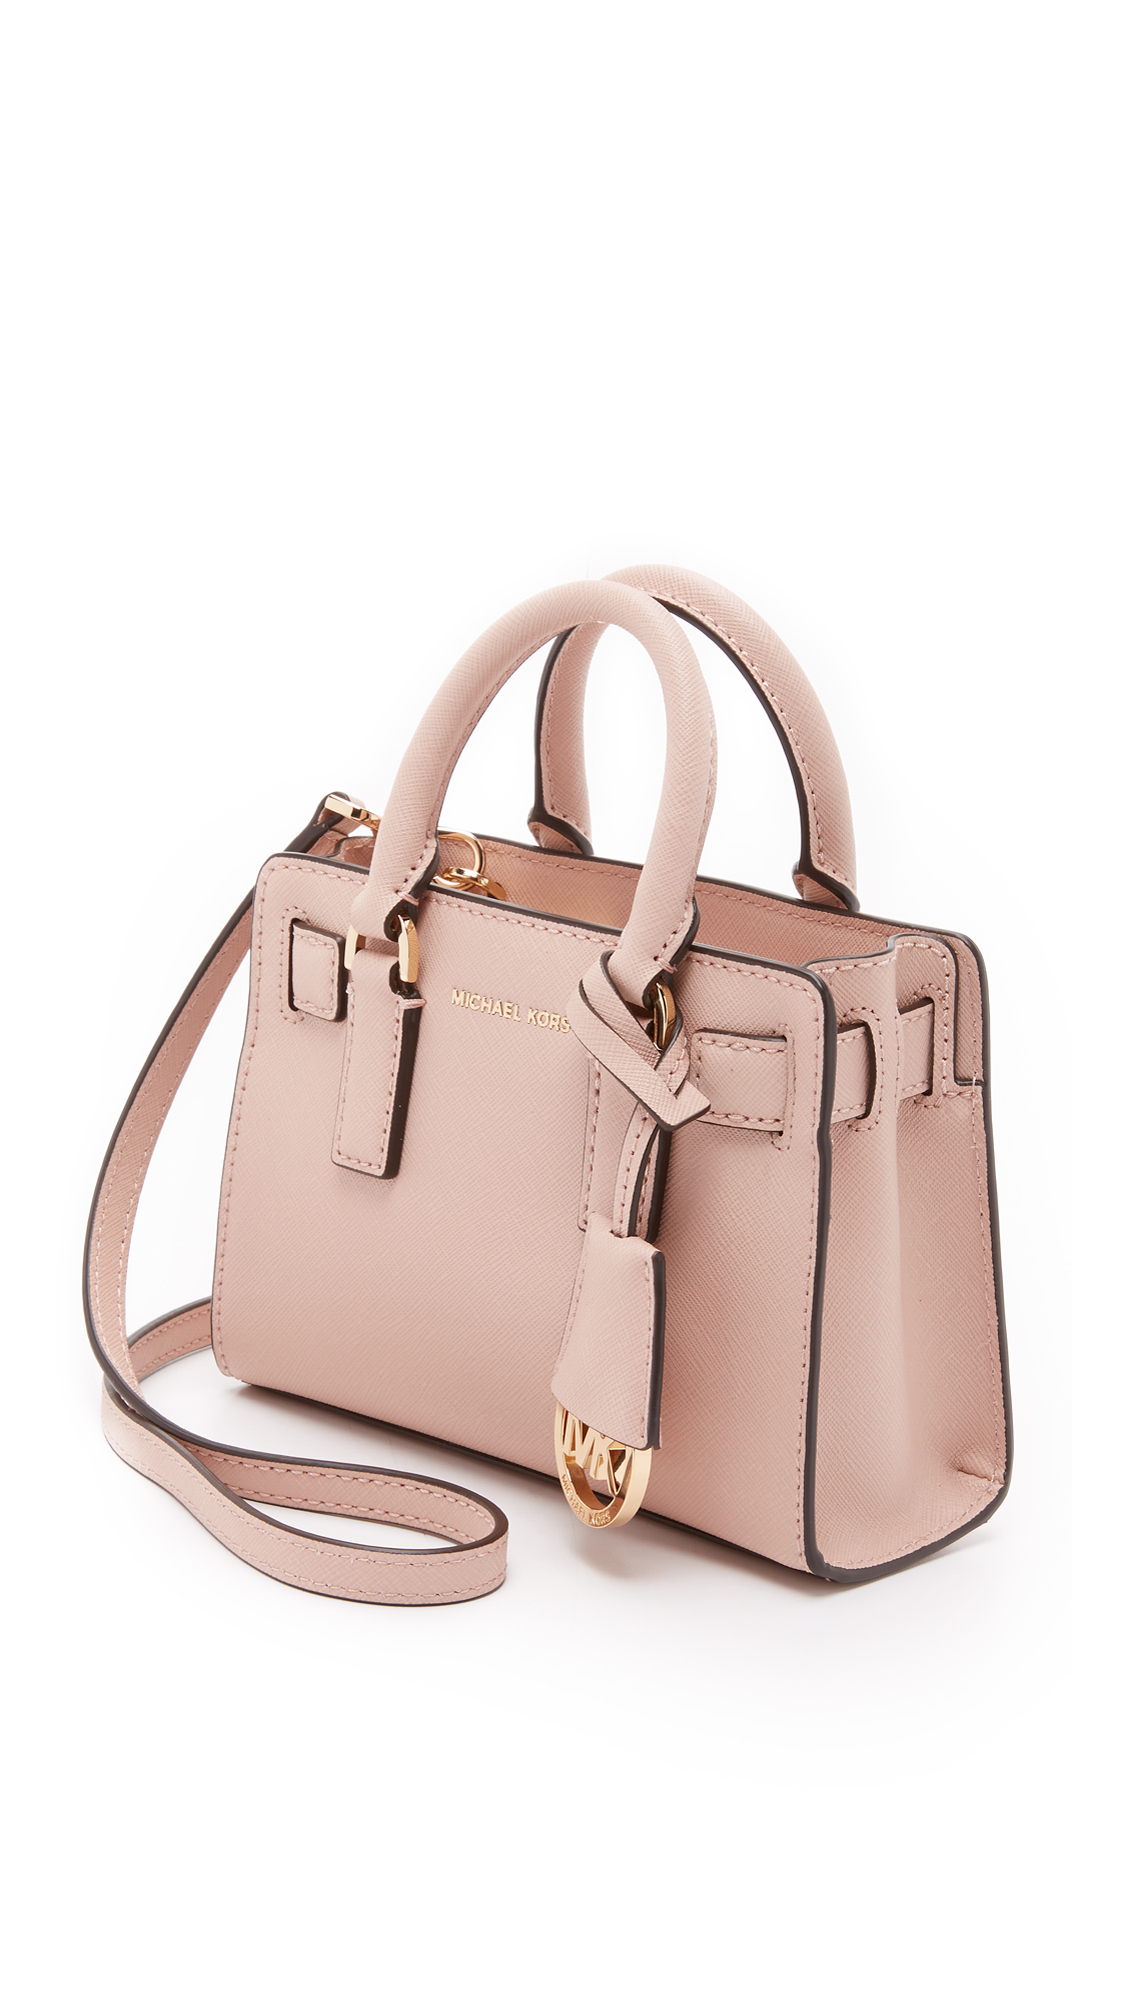 92709b44aeb7 Gallery. Previously sold at  Shopbop · Women s Michael By Michael Kors  Dillon Women s Michael Kors Dillon Women s Cross Body Bags ...